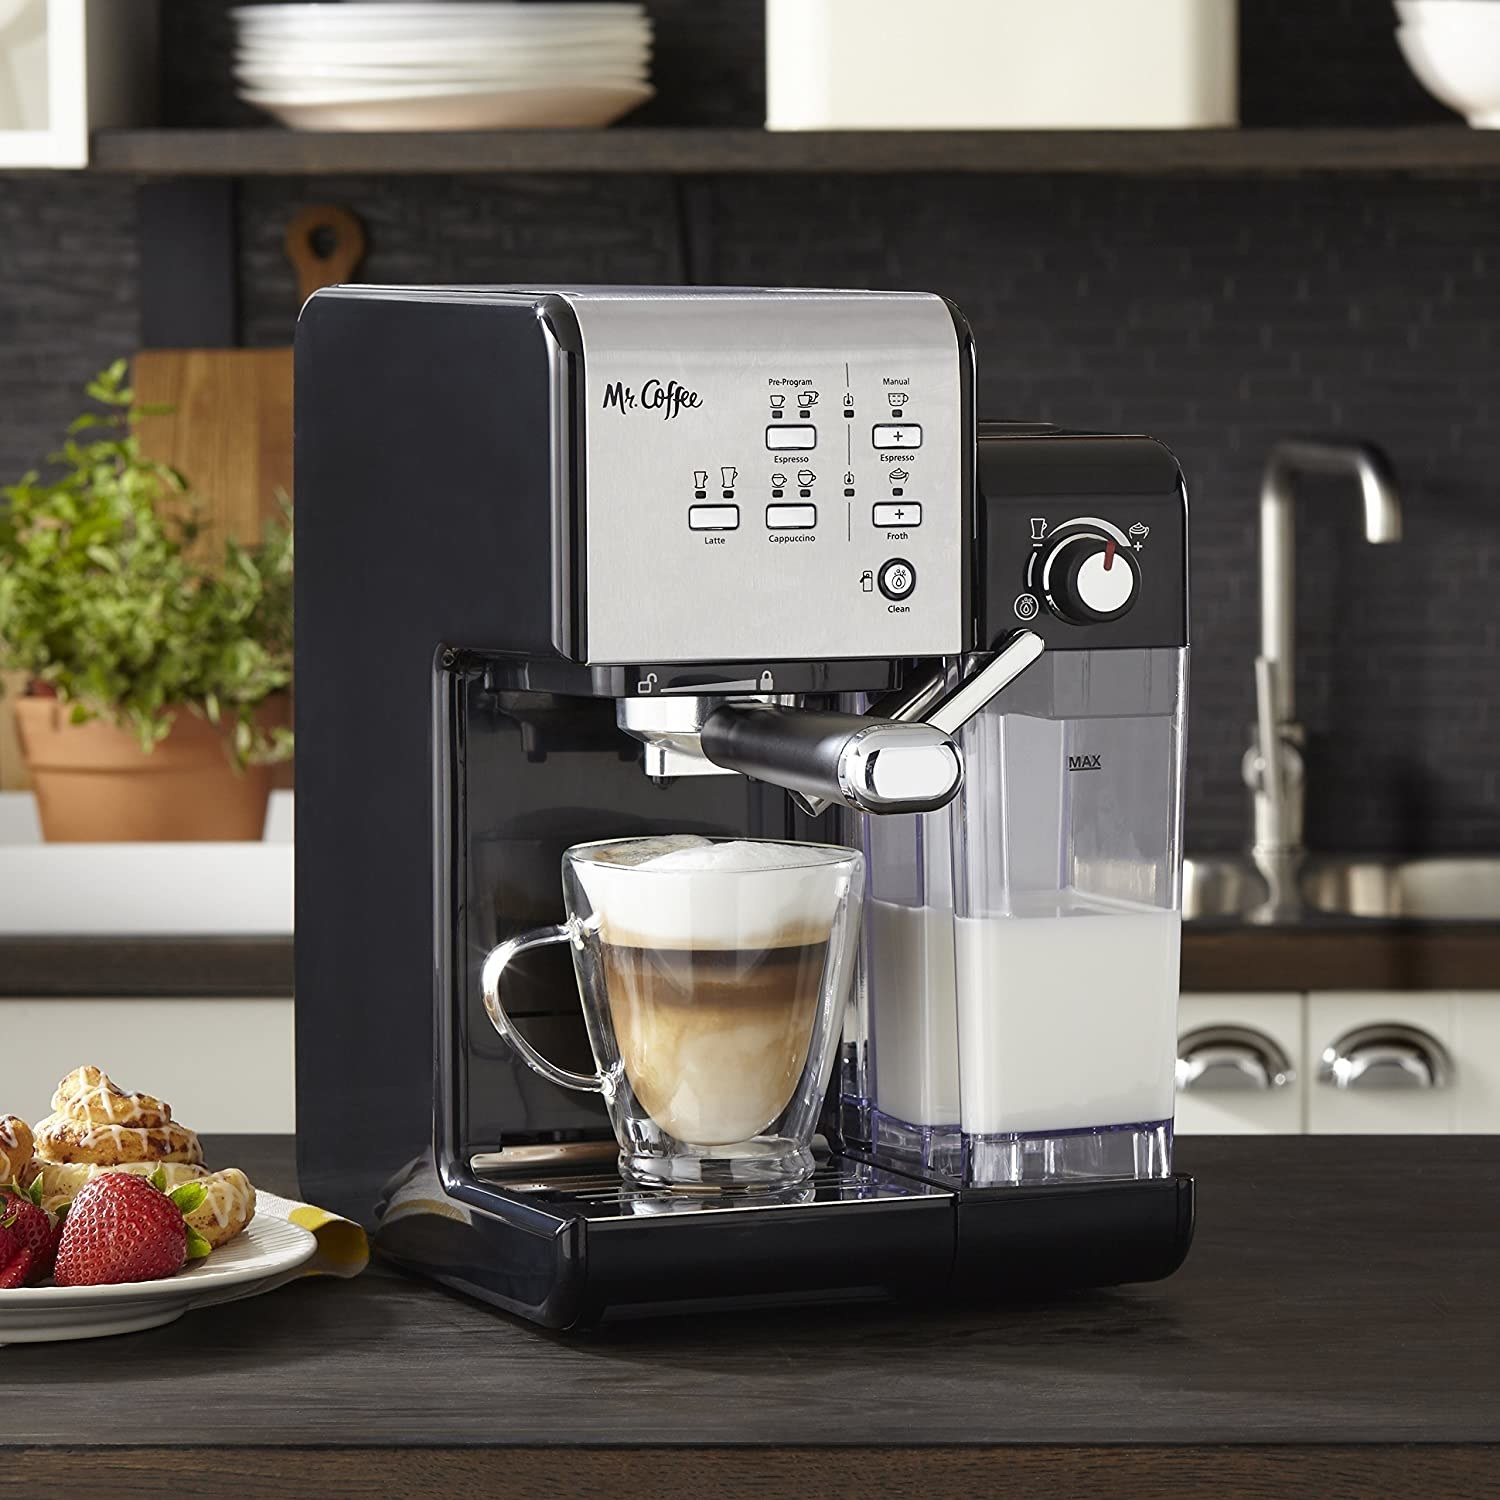 The machine, featuring simple button controls, a portafilter, and water and milk reservoirs